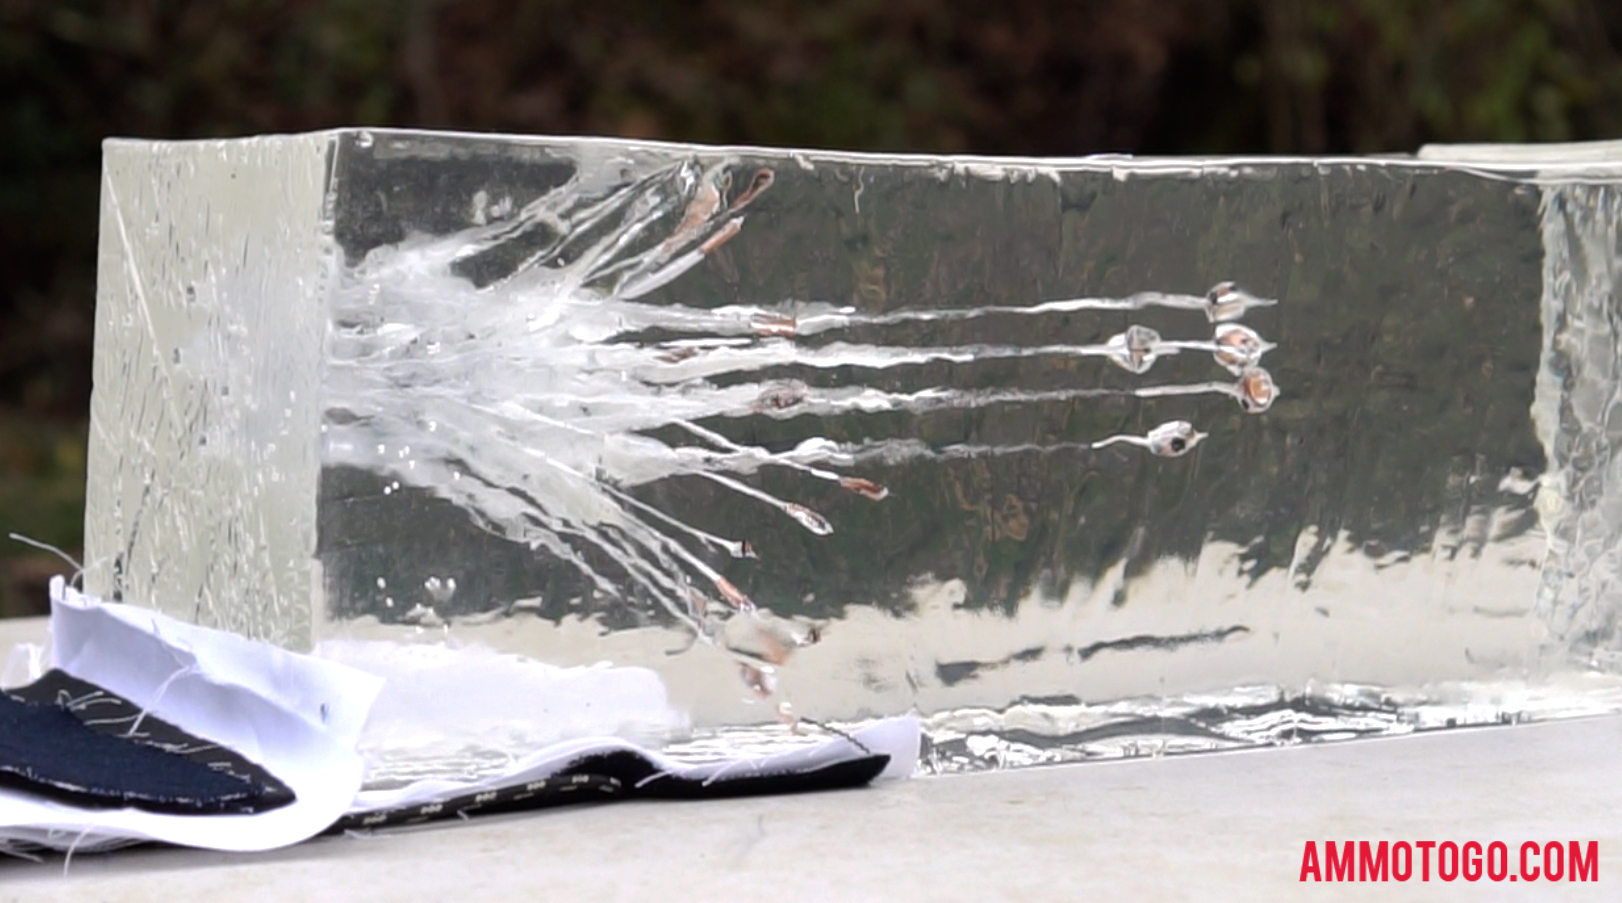 Hollow Point Ammo Fired Into Ballistic Gel